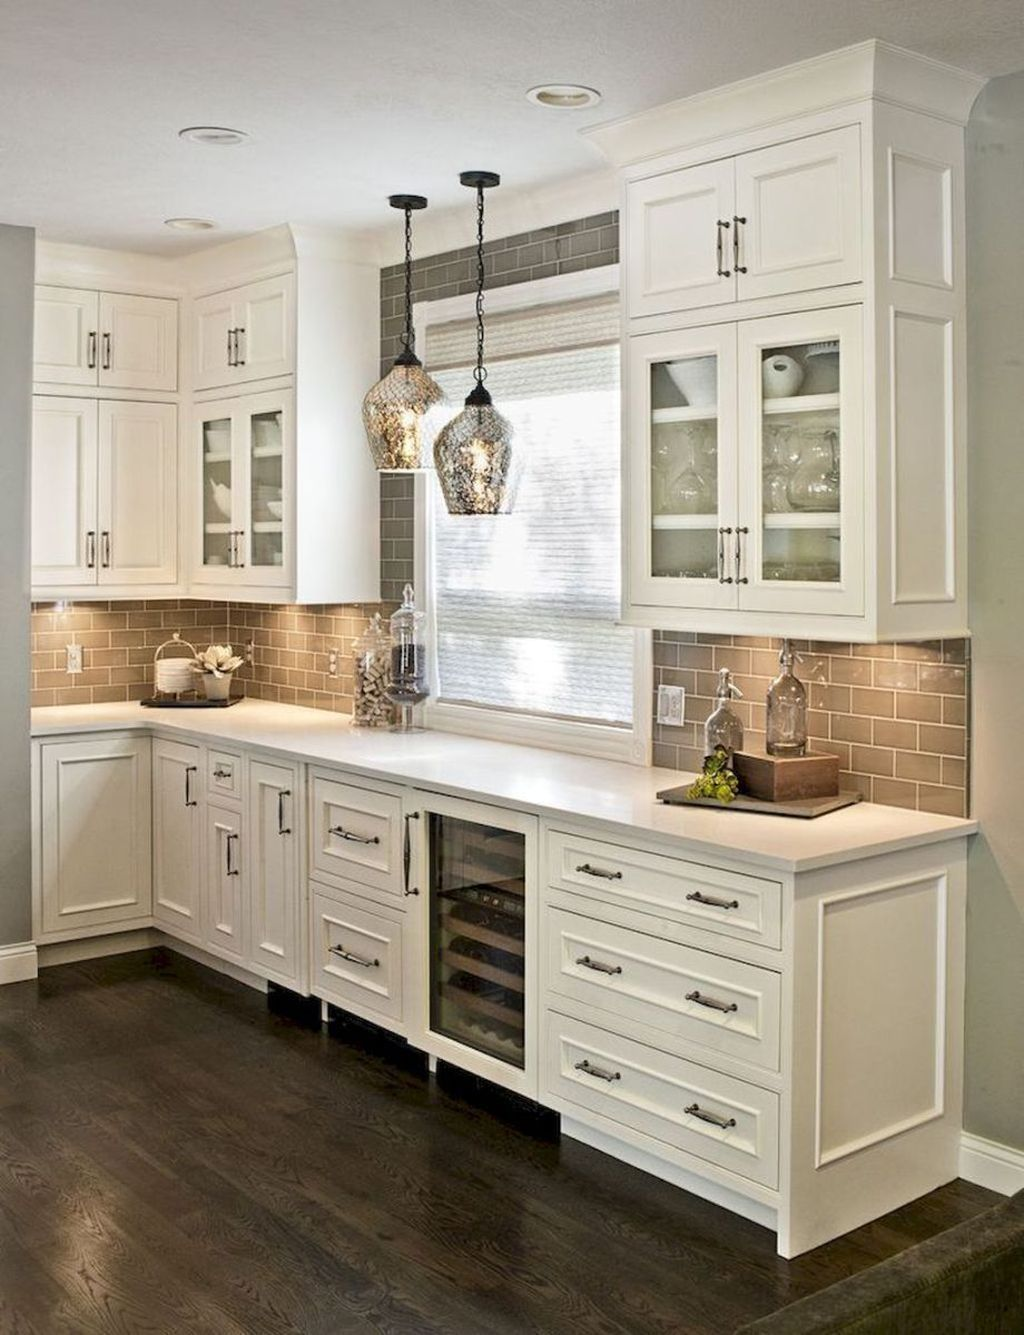 41 Stunning Rustic Farmhouse Kitchen Cabinets Decoration Ideas In